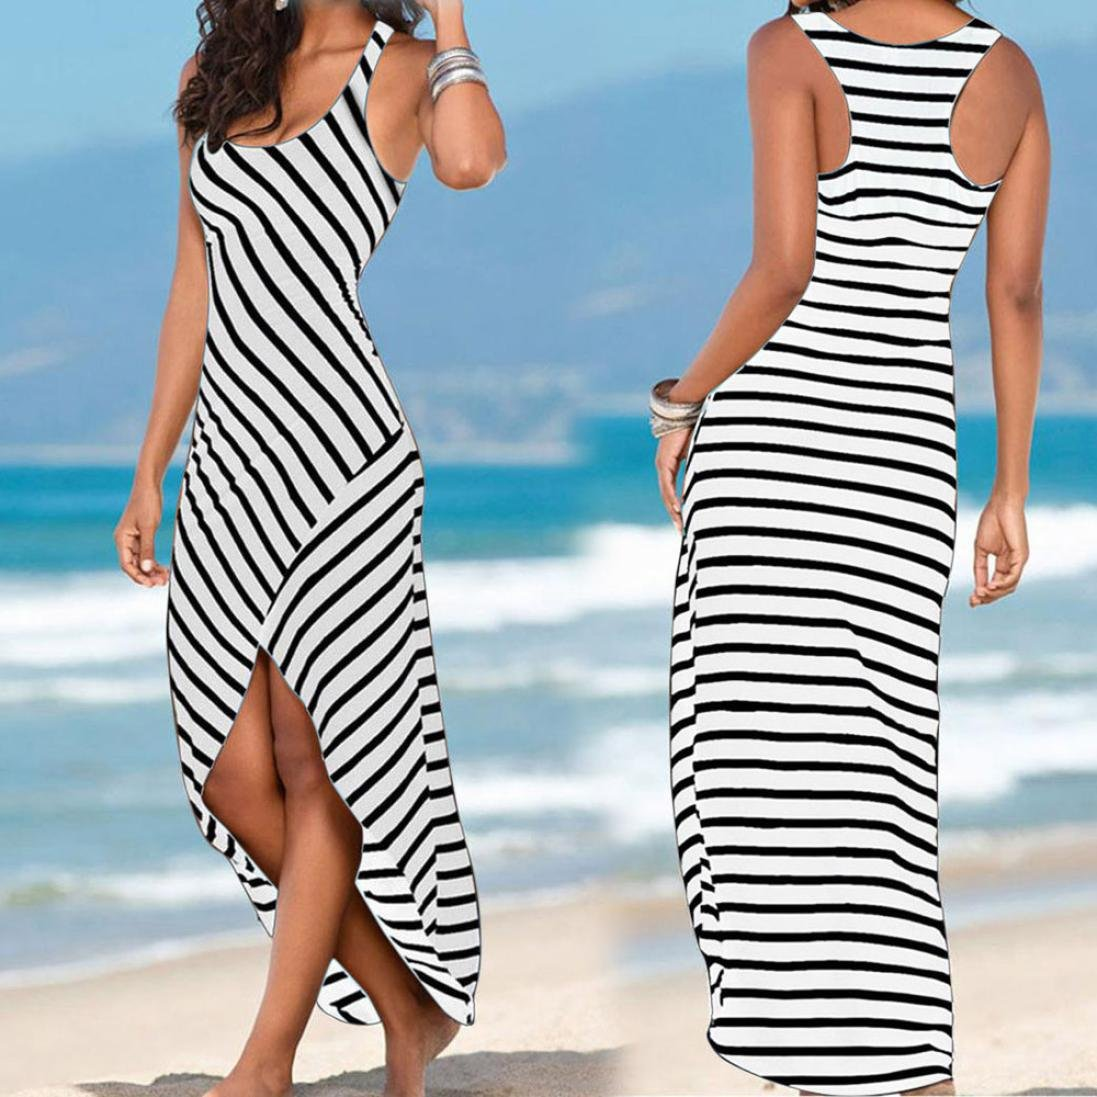 1b45080b70 Black Striped Dress for Women Maxi Beach Sleeveless Racerback Sundress  Boatneck  1540905635-100815  -  5.67